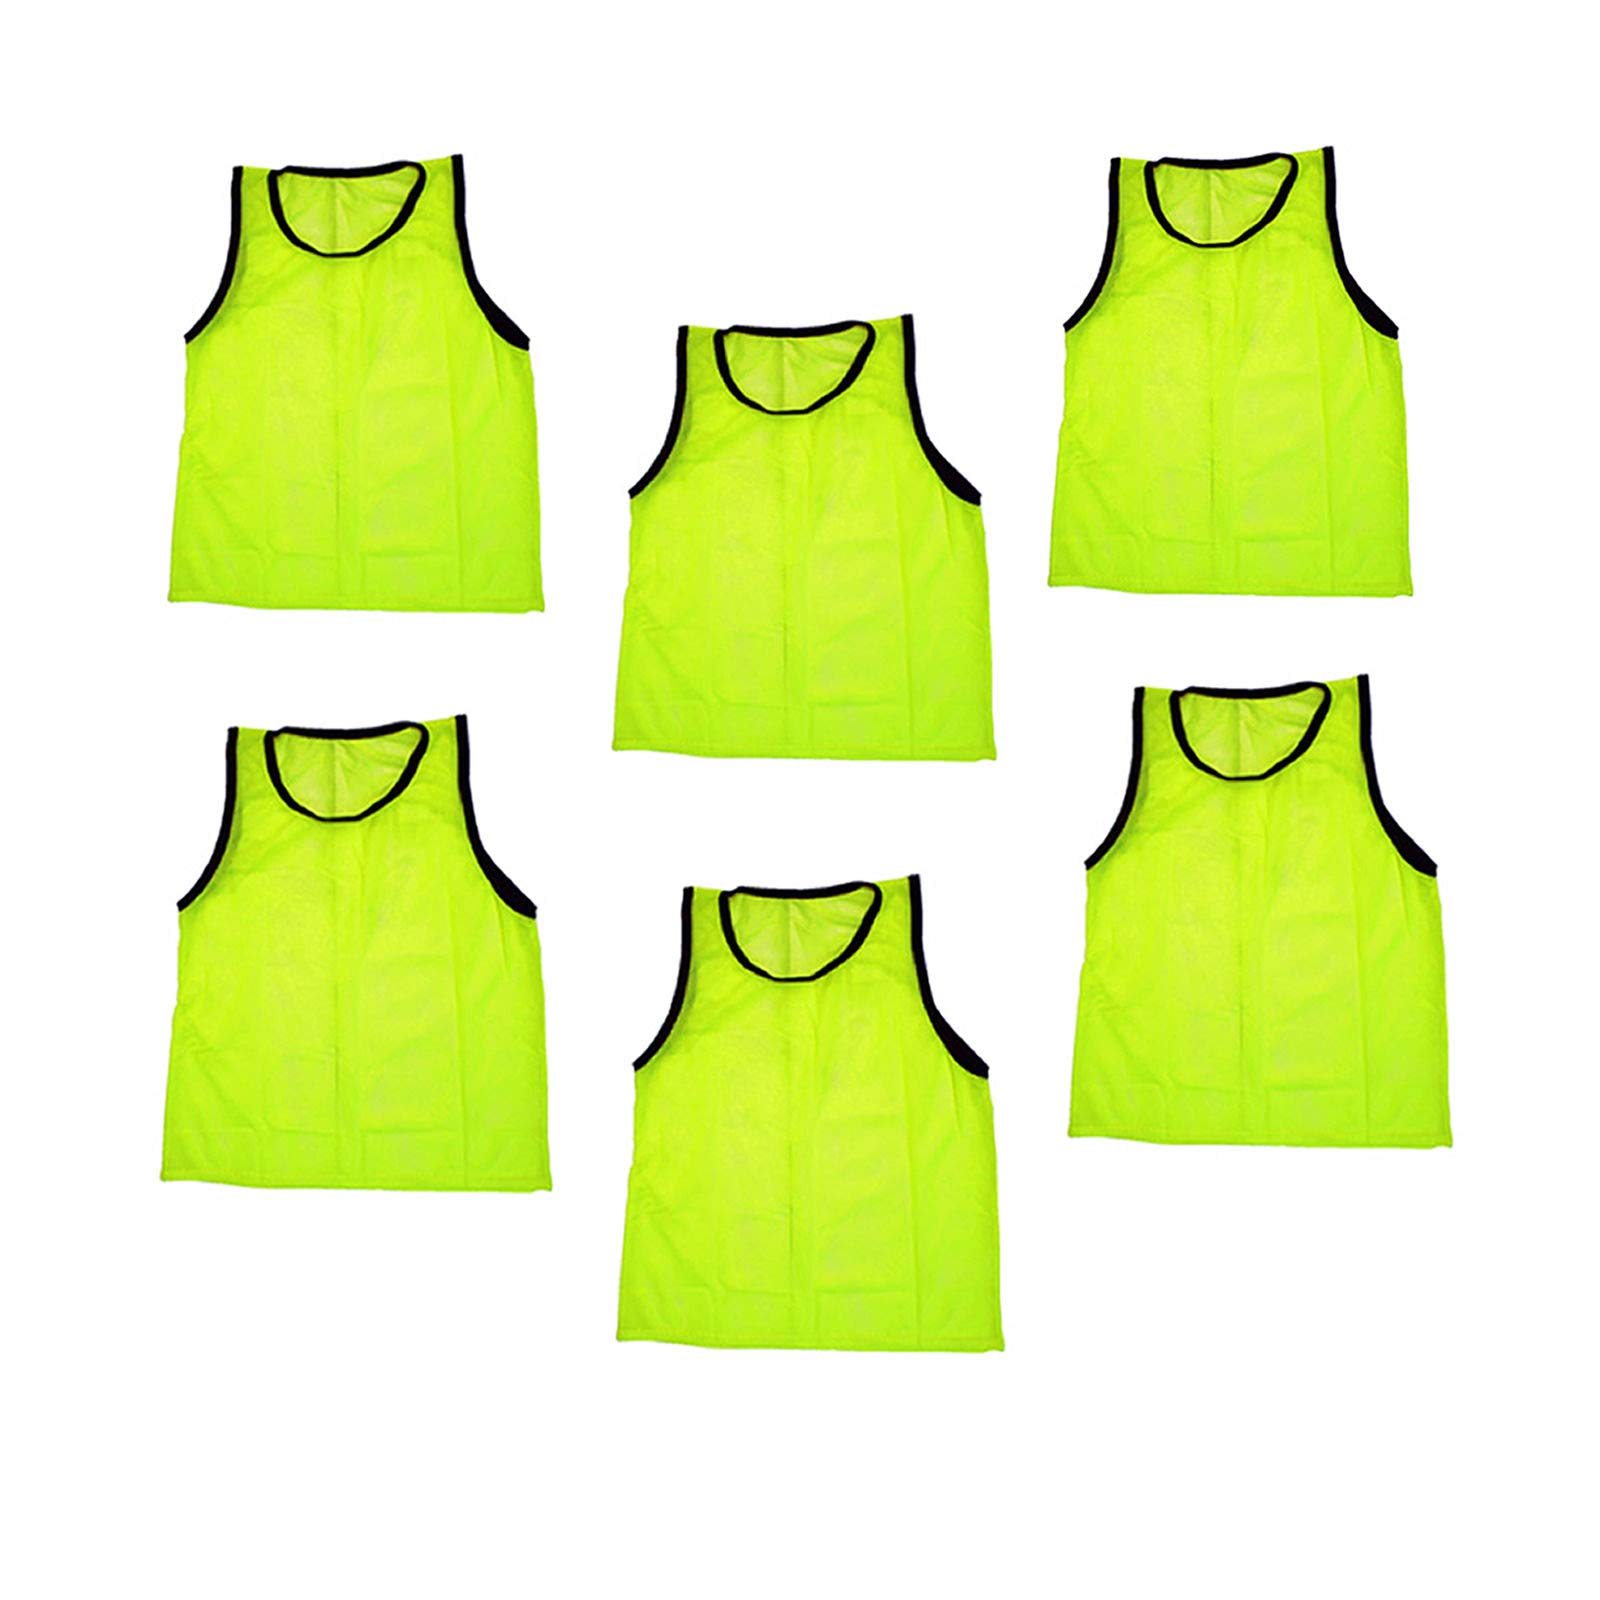 Bright Sun 6 pcs Scrimmage Vests Pinnies Soccer Youth Yellow #BDMN